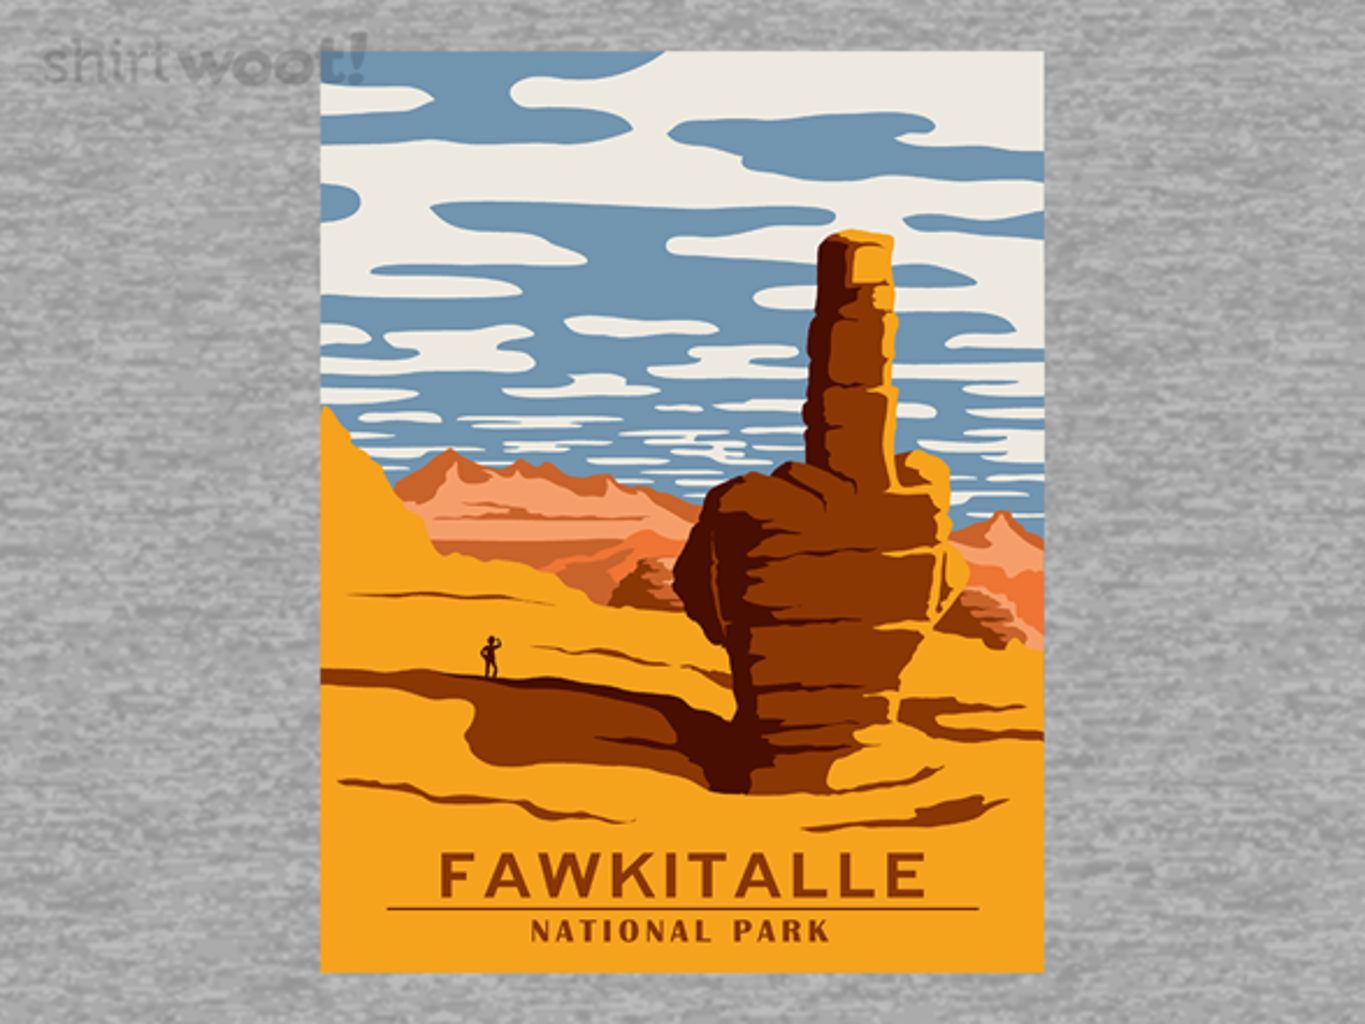 Woot!: Fawkitalle National Park